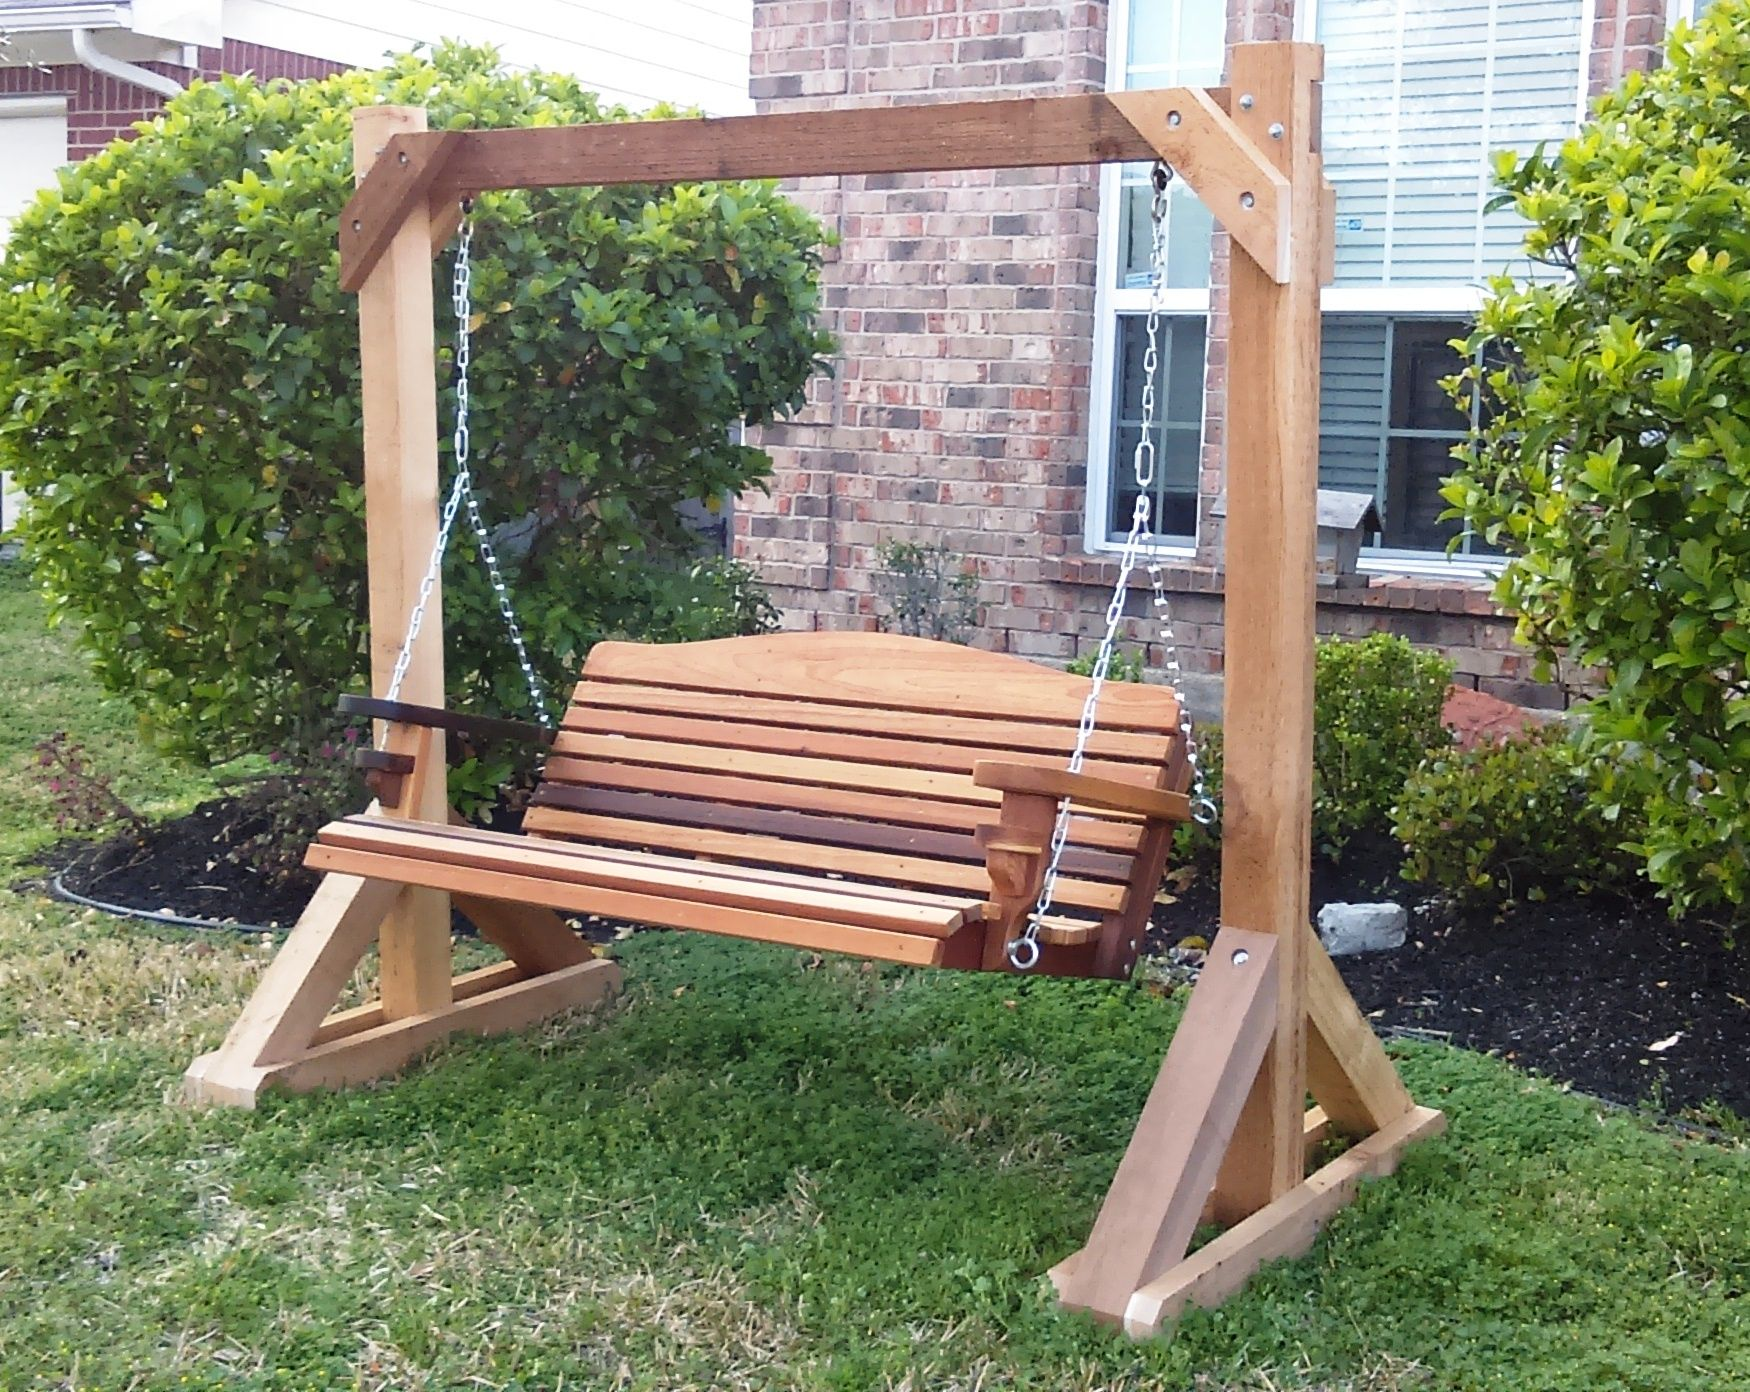 Design of covered free standing fabulous porch swing photo for Building a wooden swing